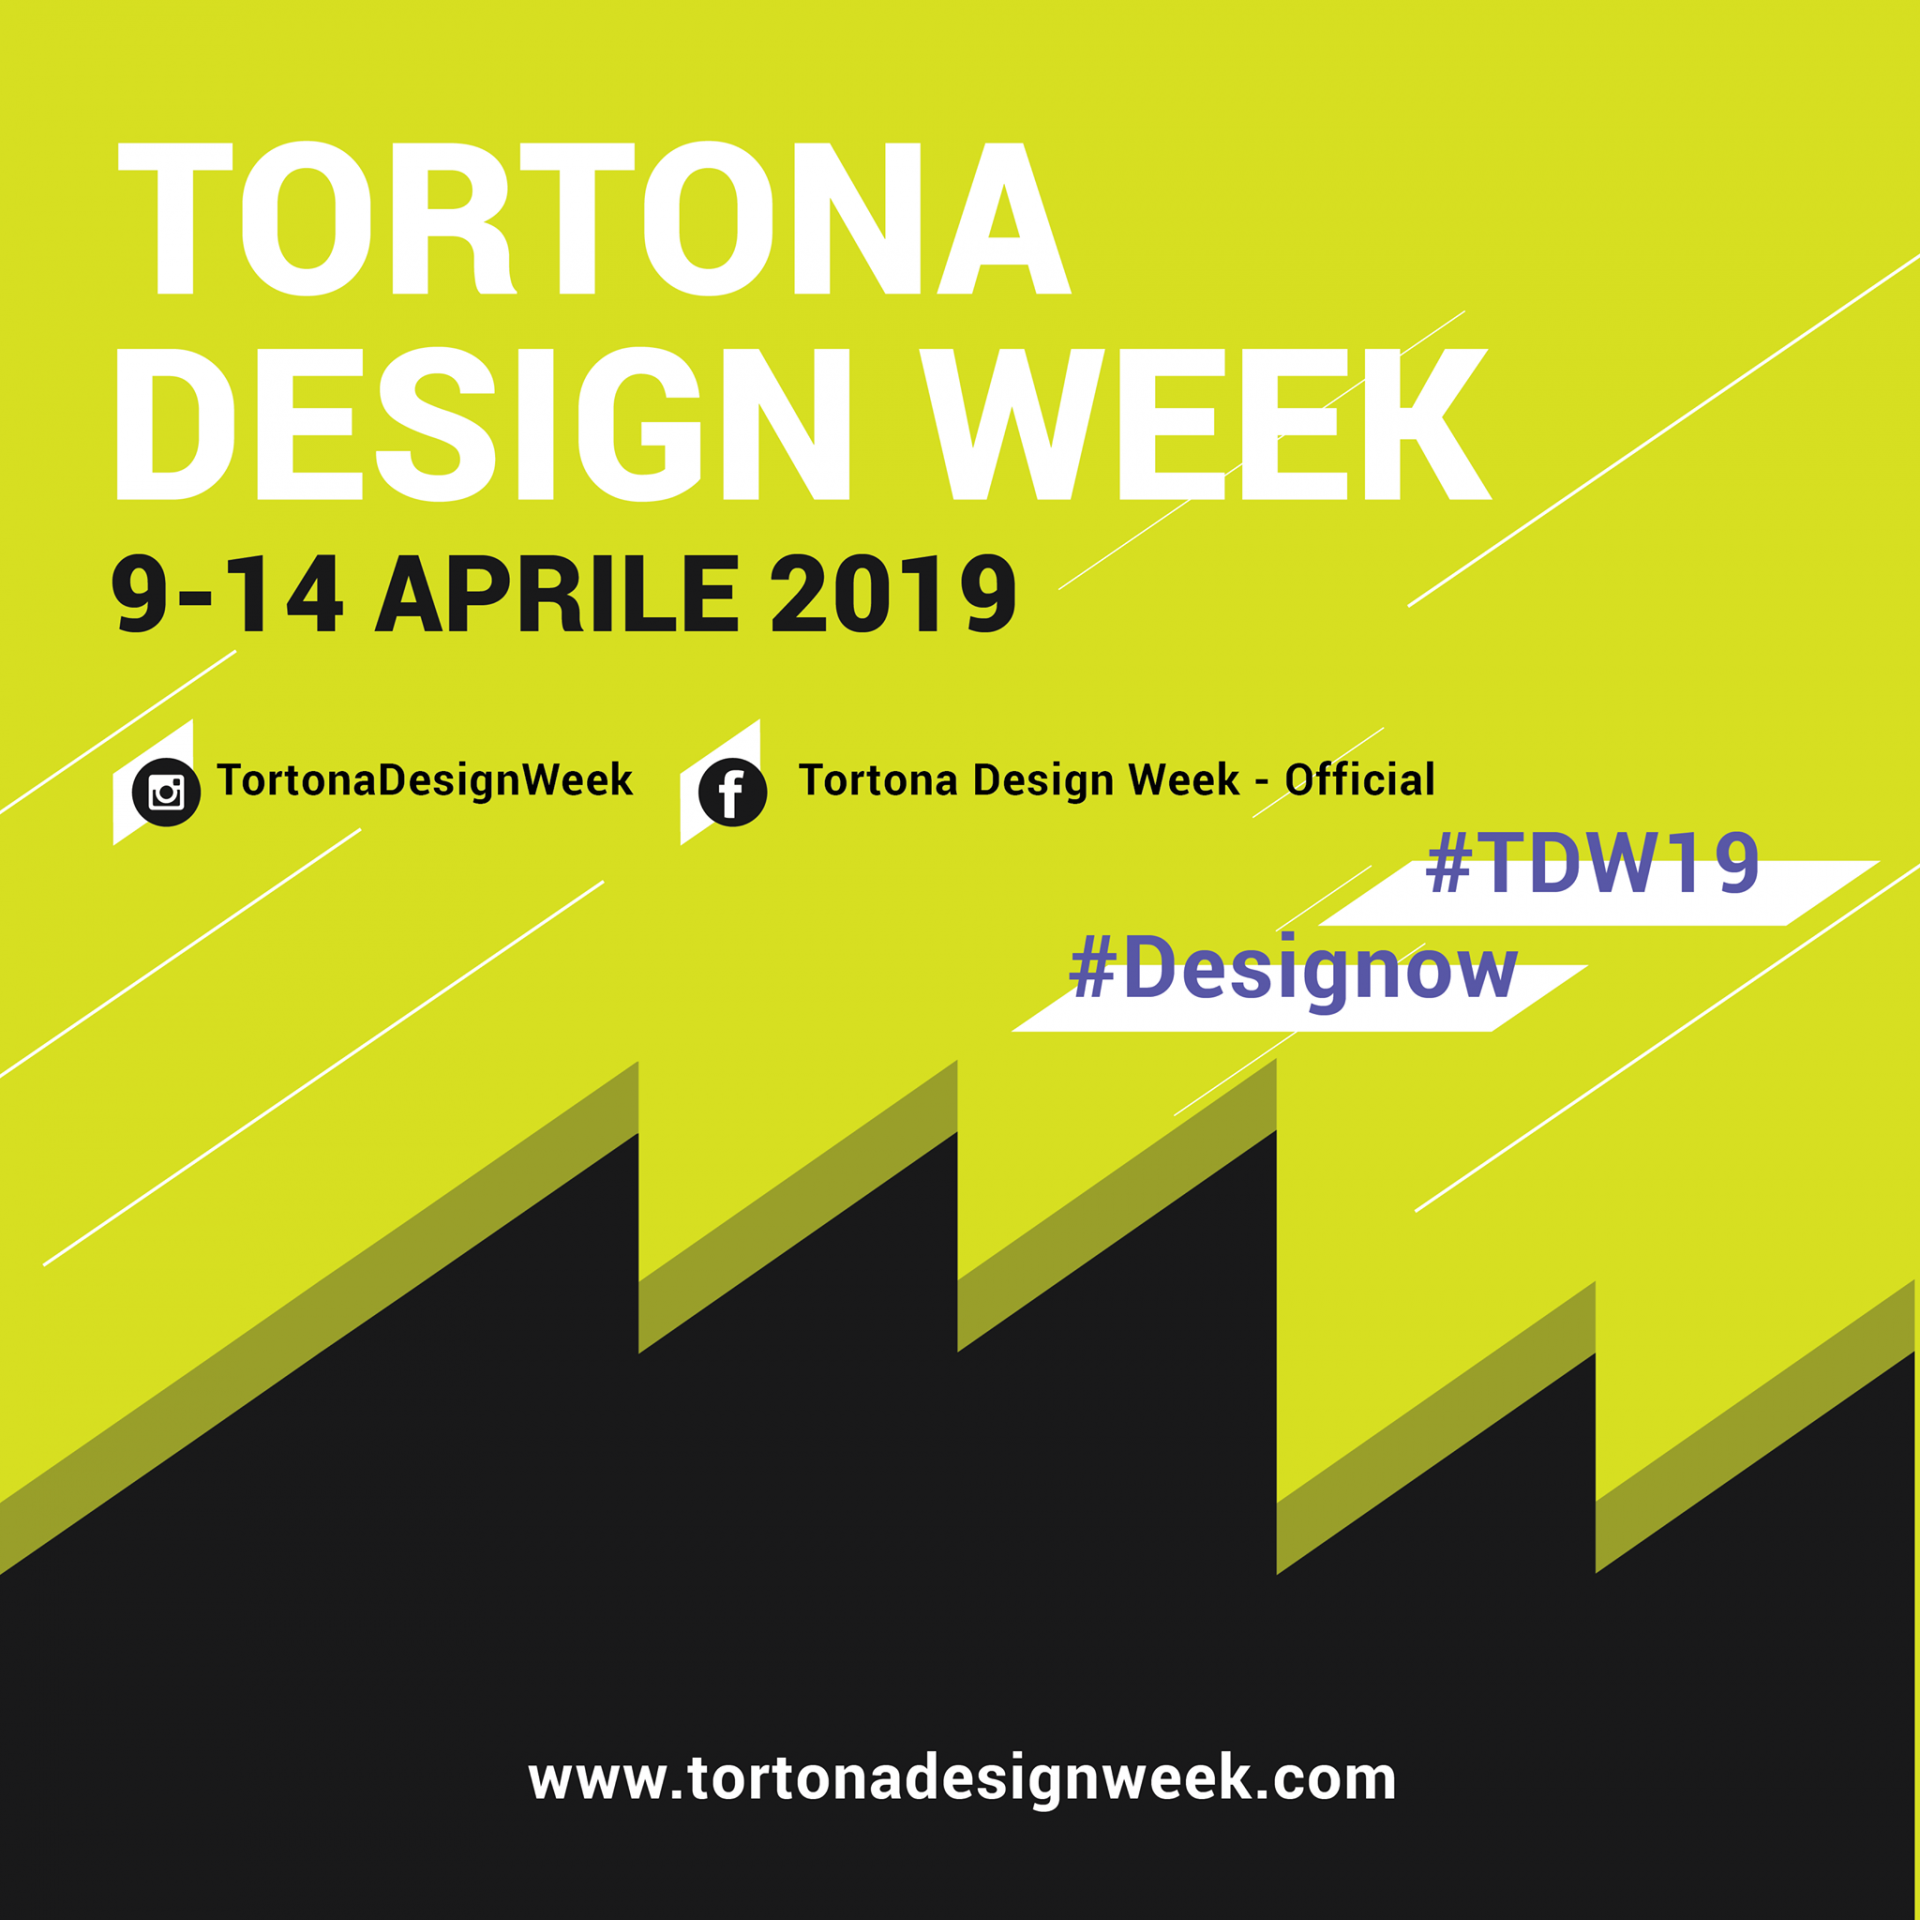 black and lime green advertisement for tortona design week